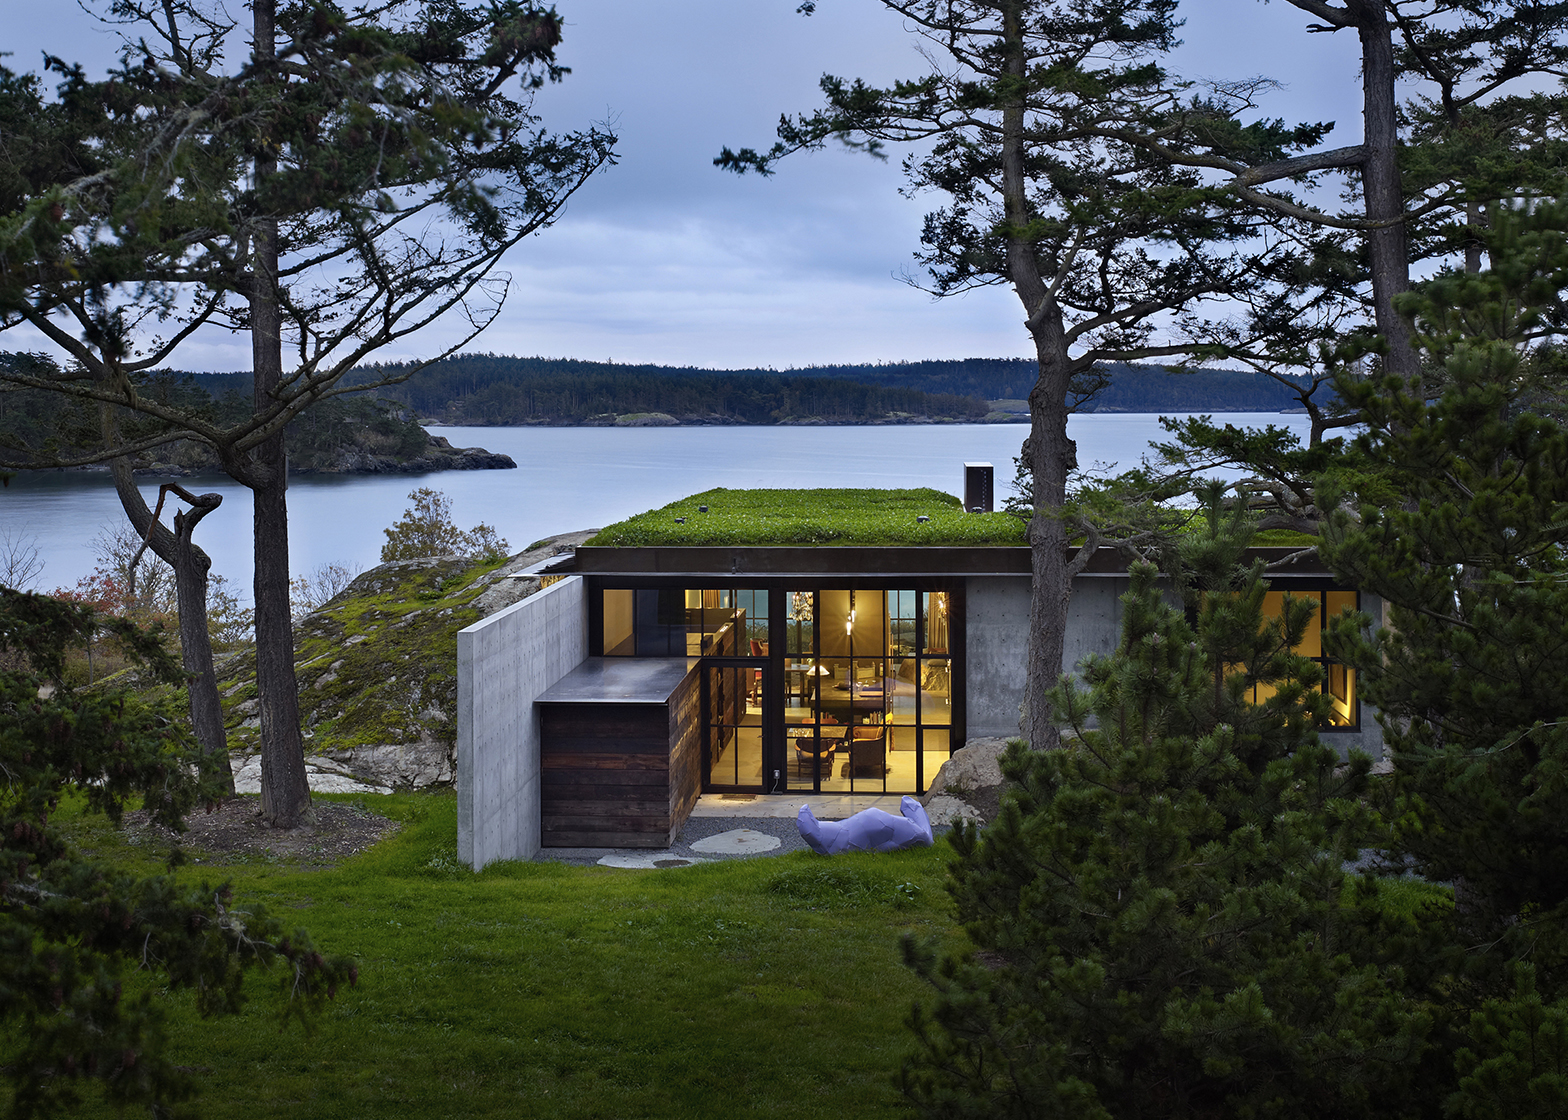 Pierre house by Olson Kundig Architects